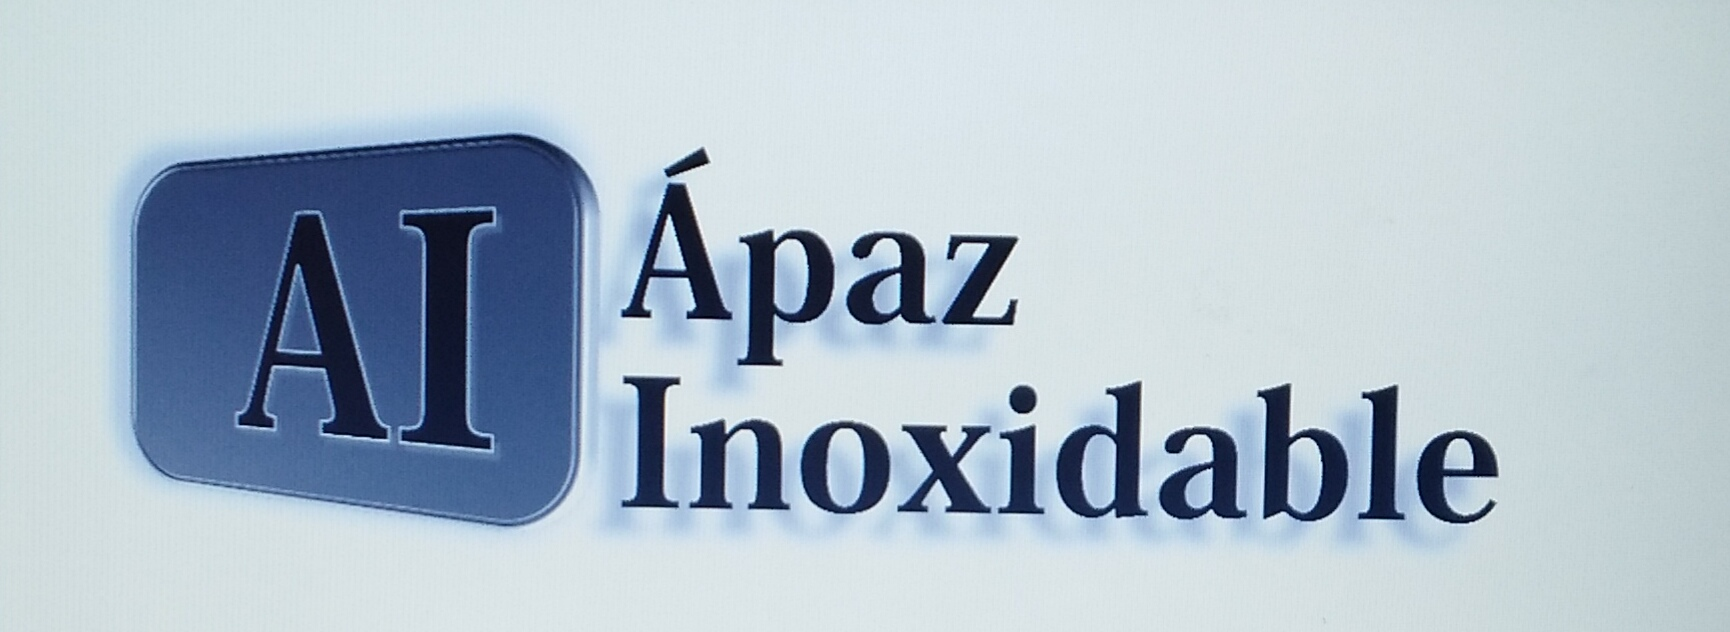 Apaz Inoxidable